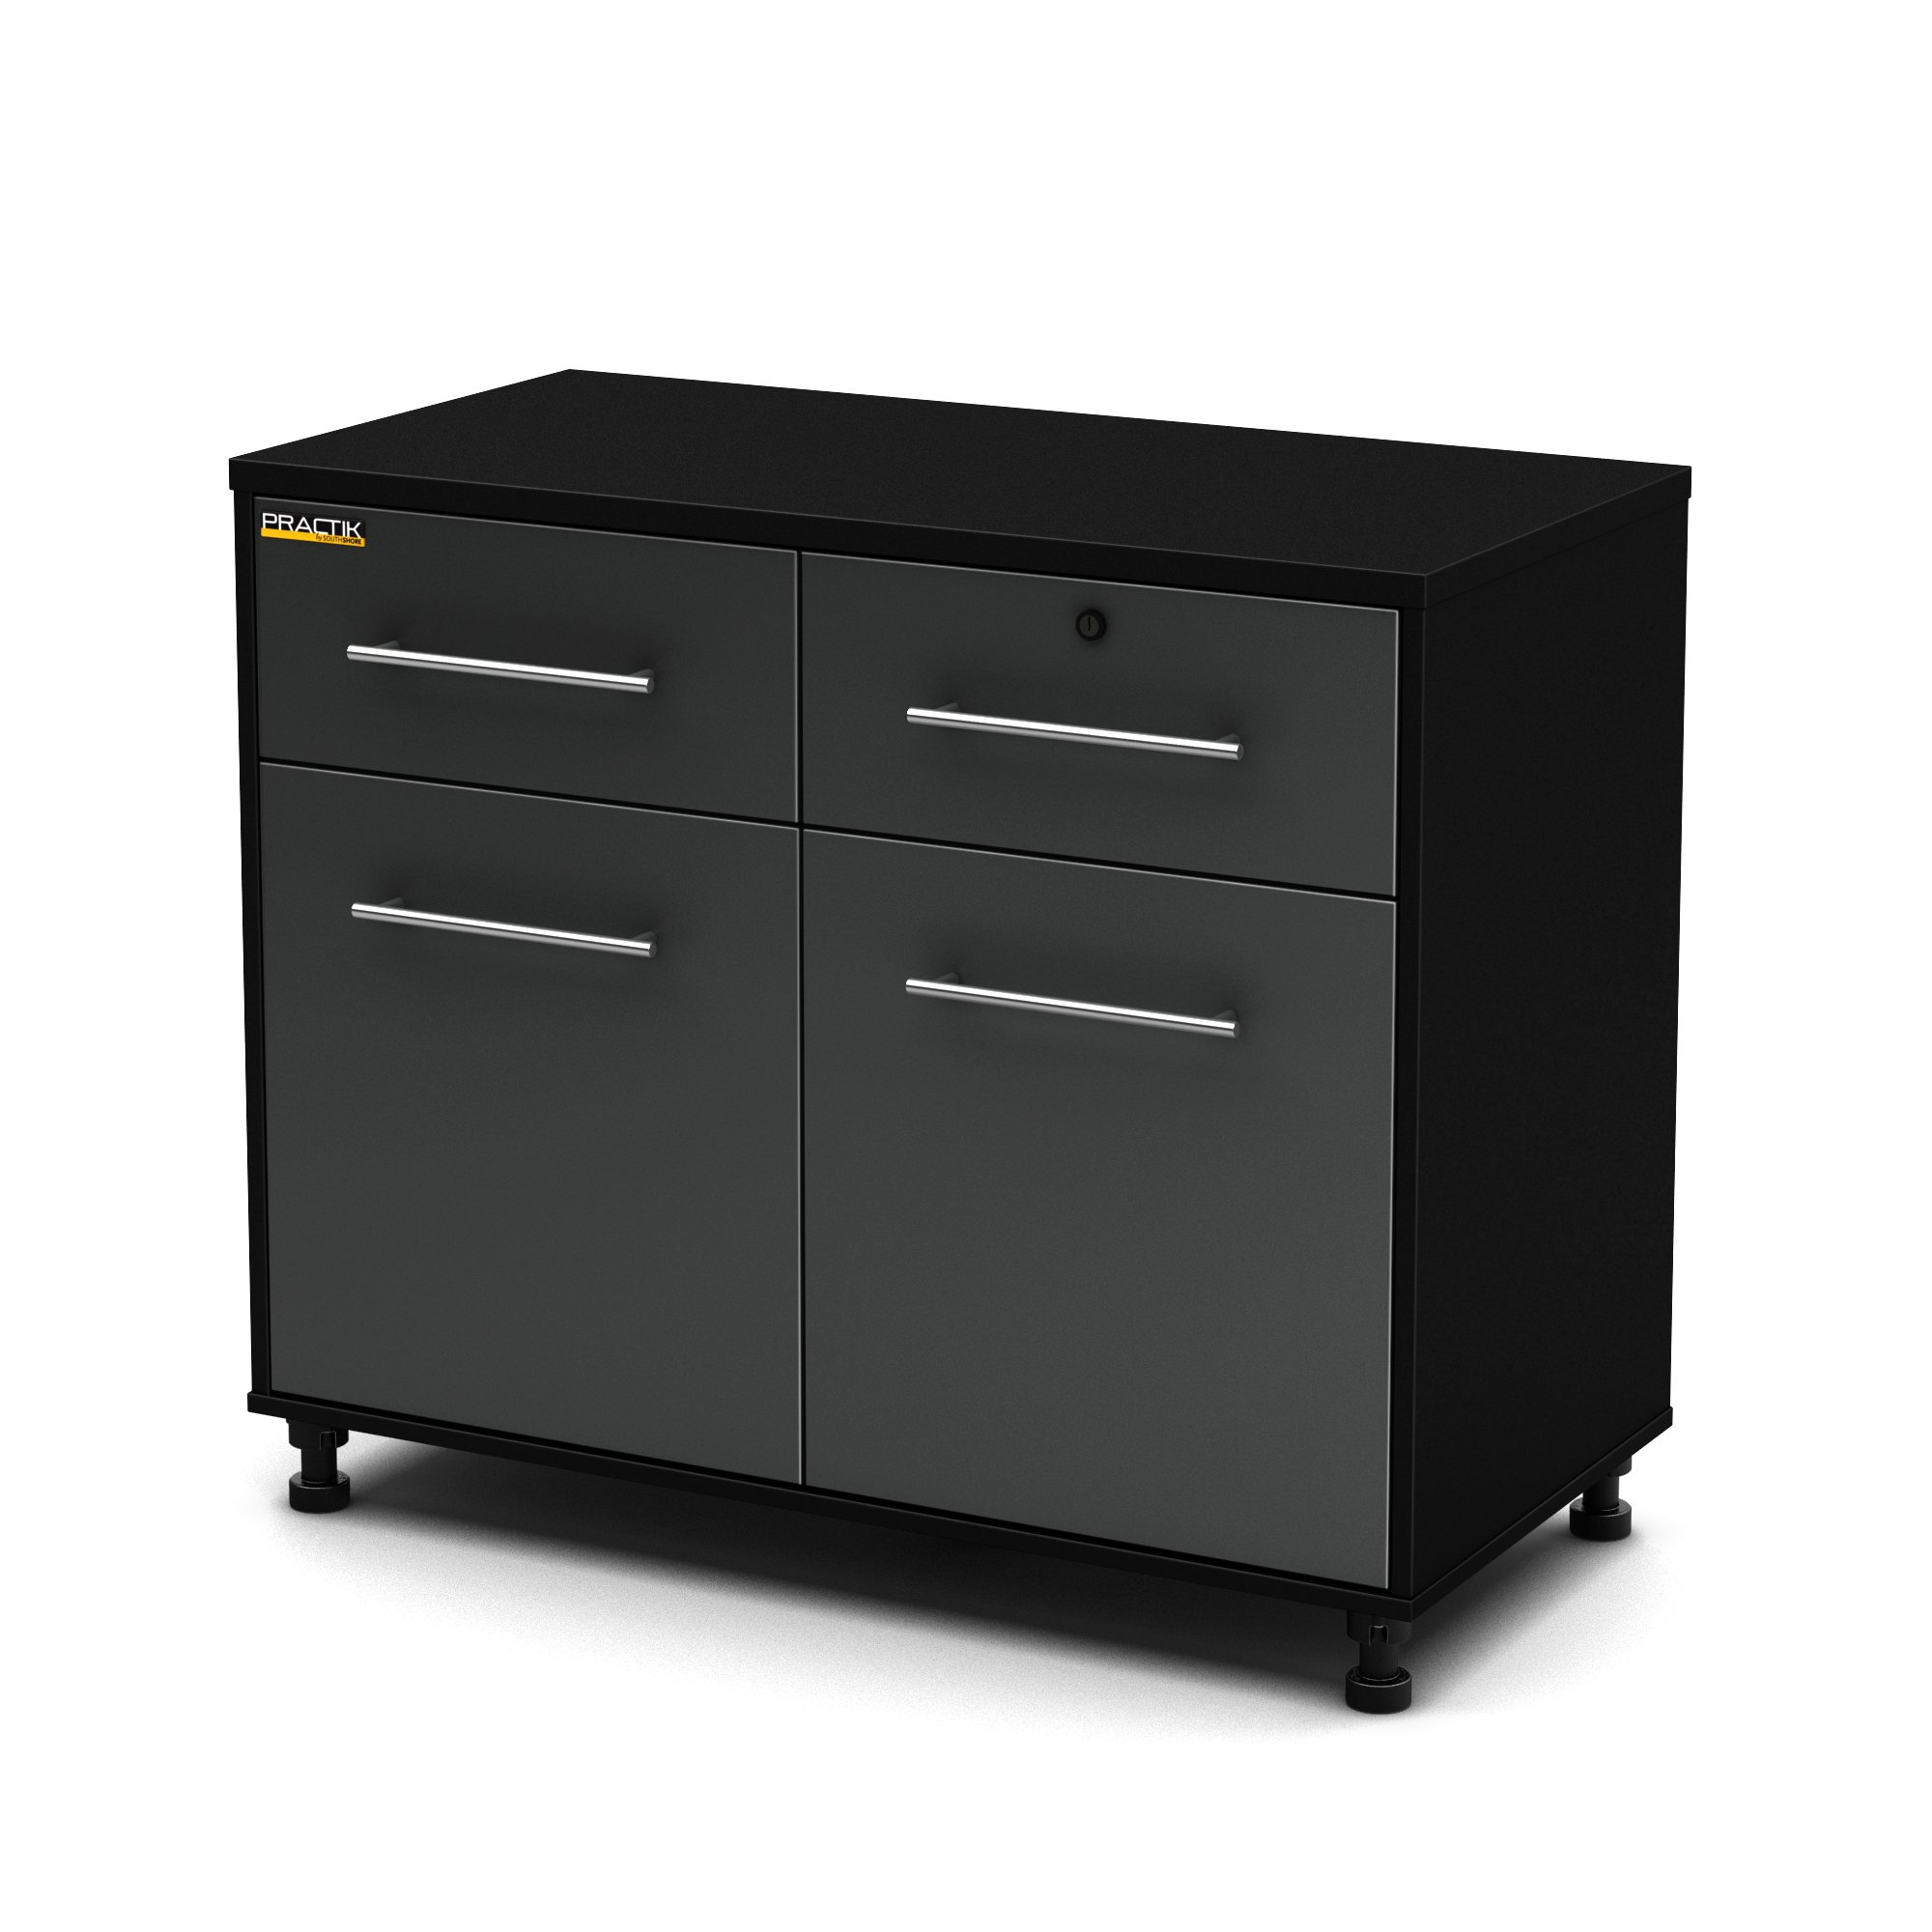 South Shore Karbon 2-Door Base Cabinet with Adjustable Legs, Pure Black/Charcoal